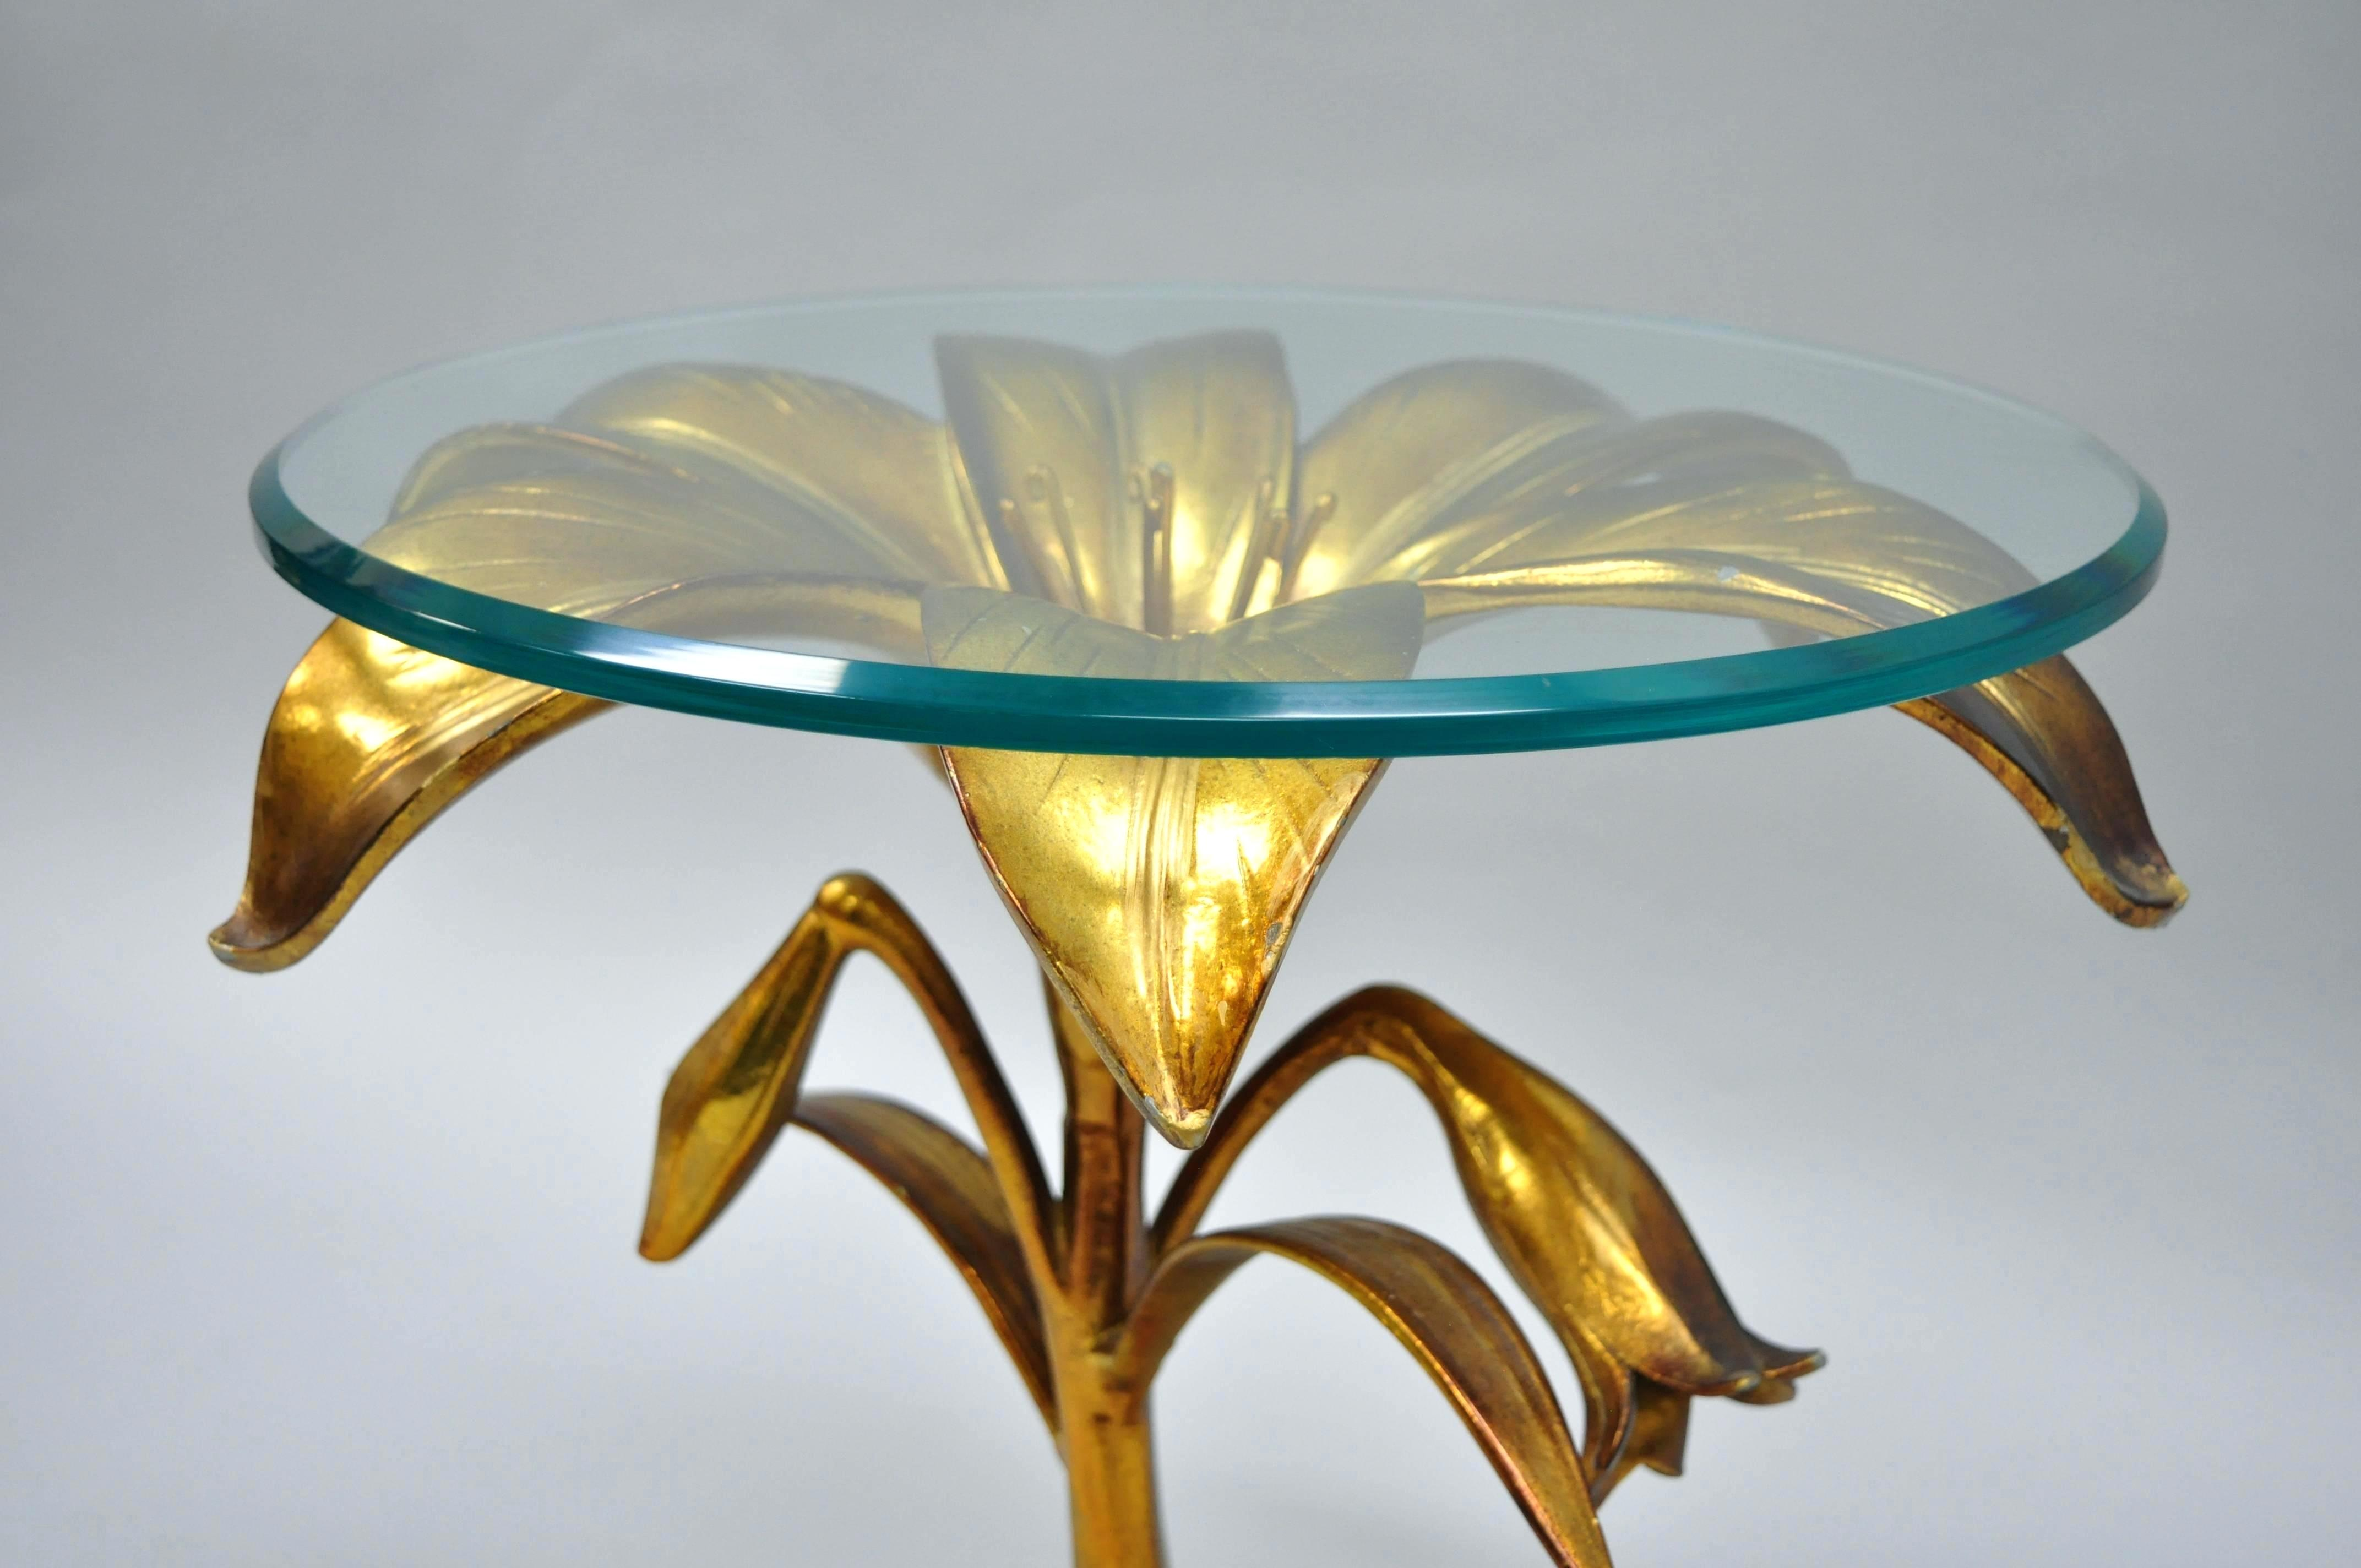 sidetables flower side table marble furniture accent pottery court gold lily leaf glass top regency good condition for barn threshold wood and coffee round decorative tablecloth